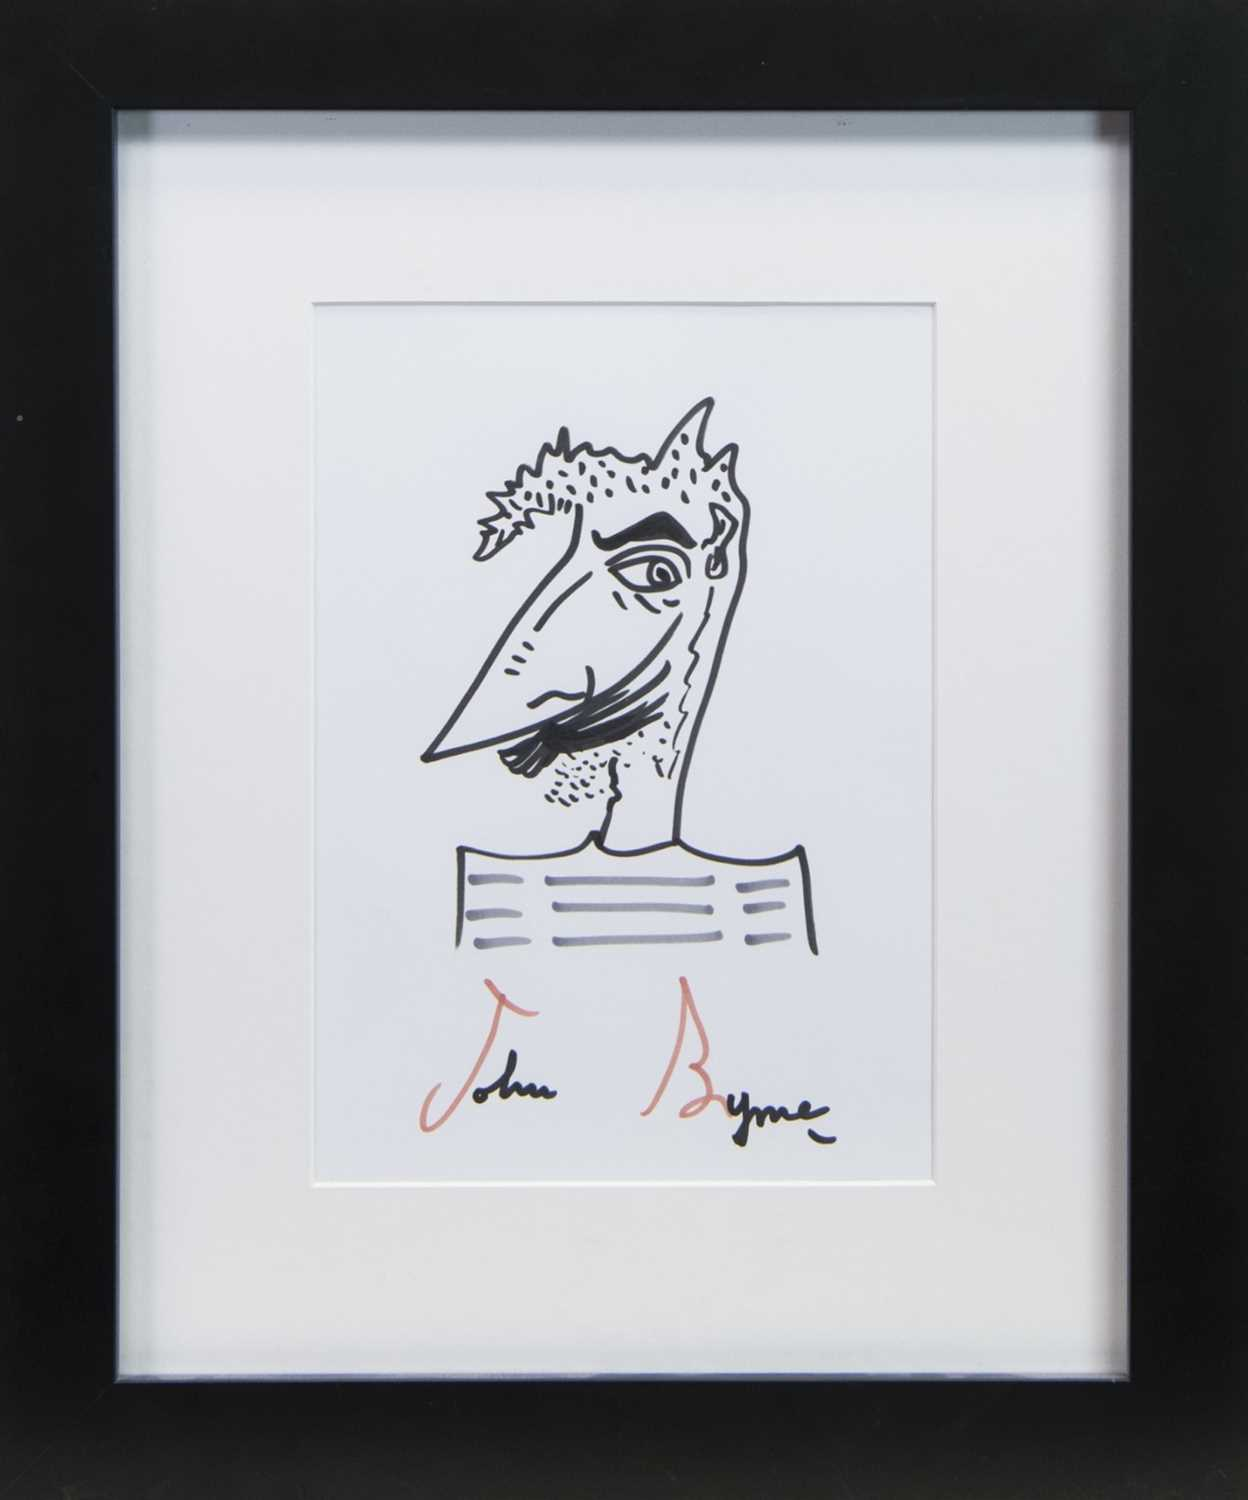 Lot 39 - UNTITLED DRAWING IN INK BY JOHN BYRNE